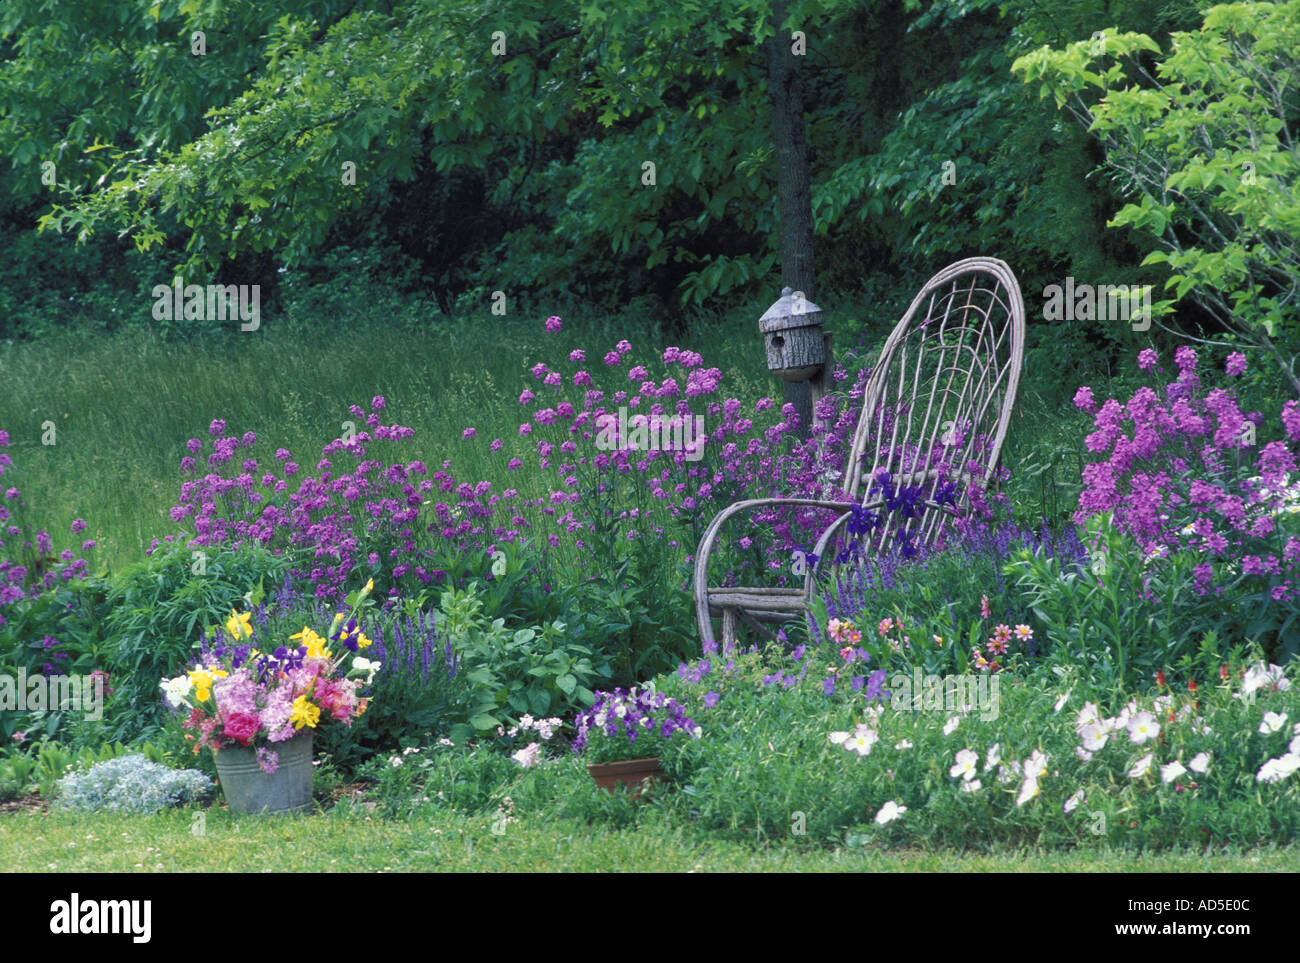 A woman 39 s garden rustic bent willow chair and birdbox in blooming stock photo royalty free - Rustic flower gardens ...